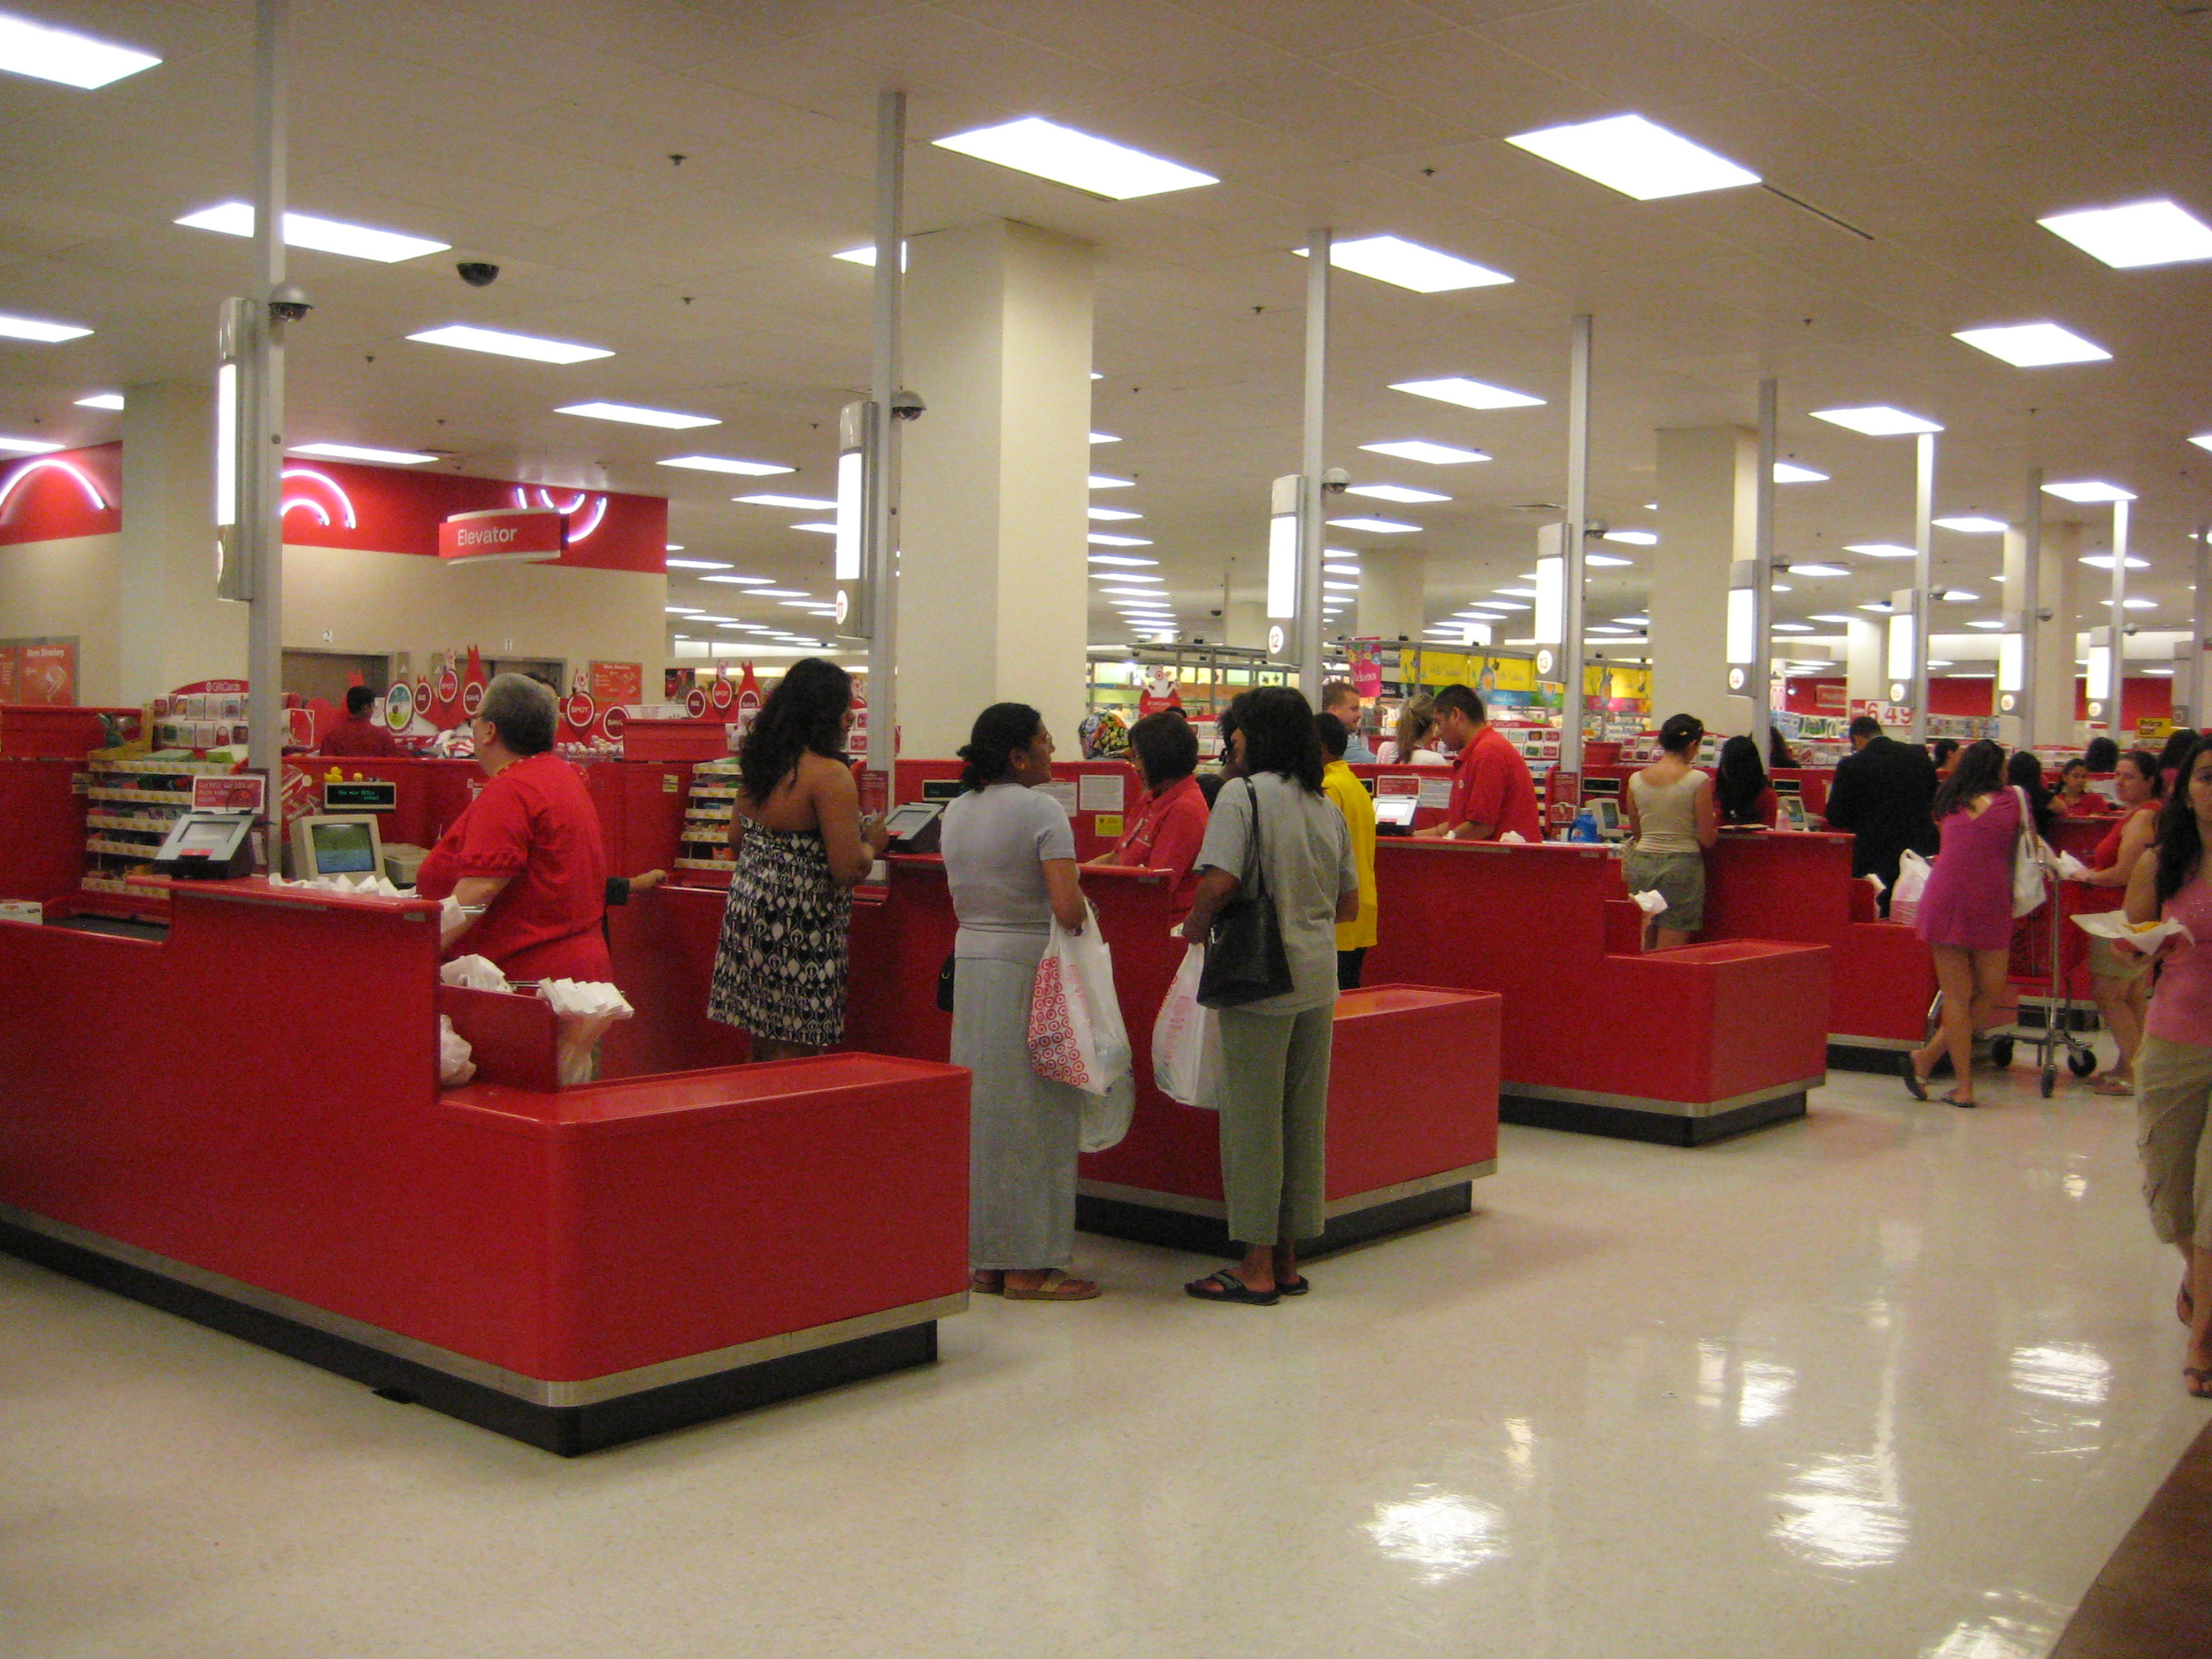 Cashiers ringing up sales